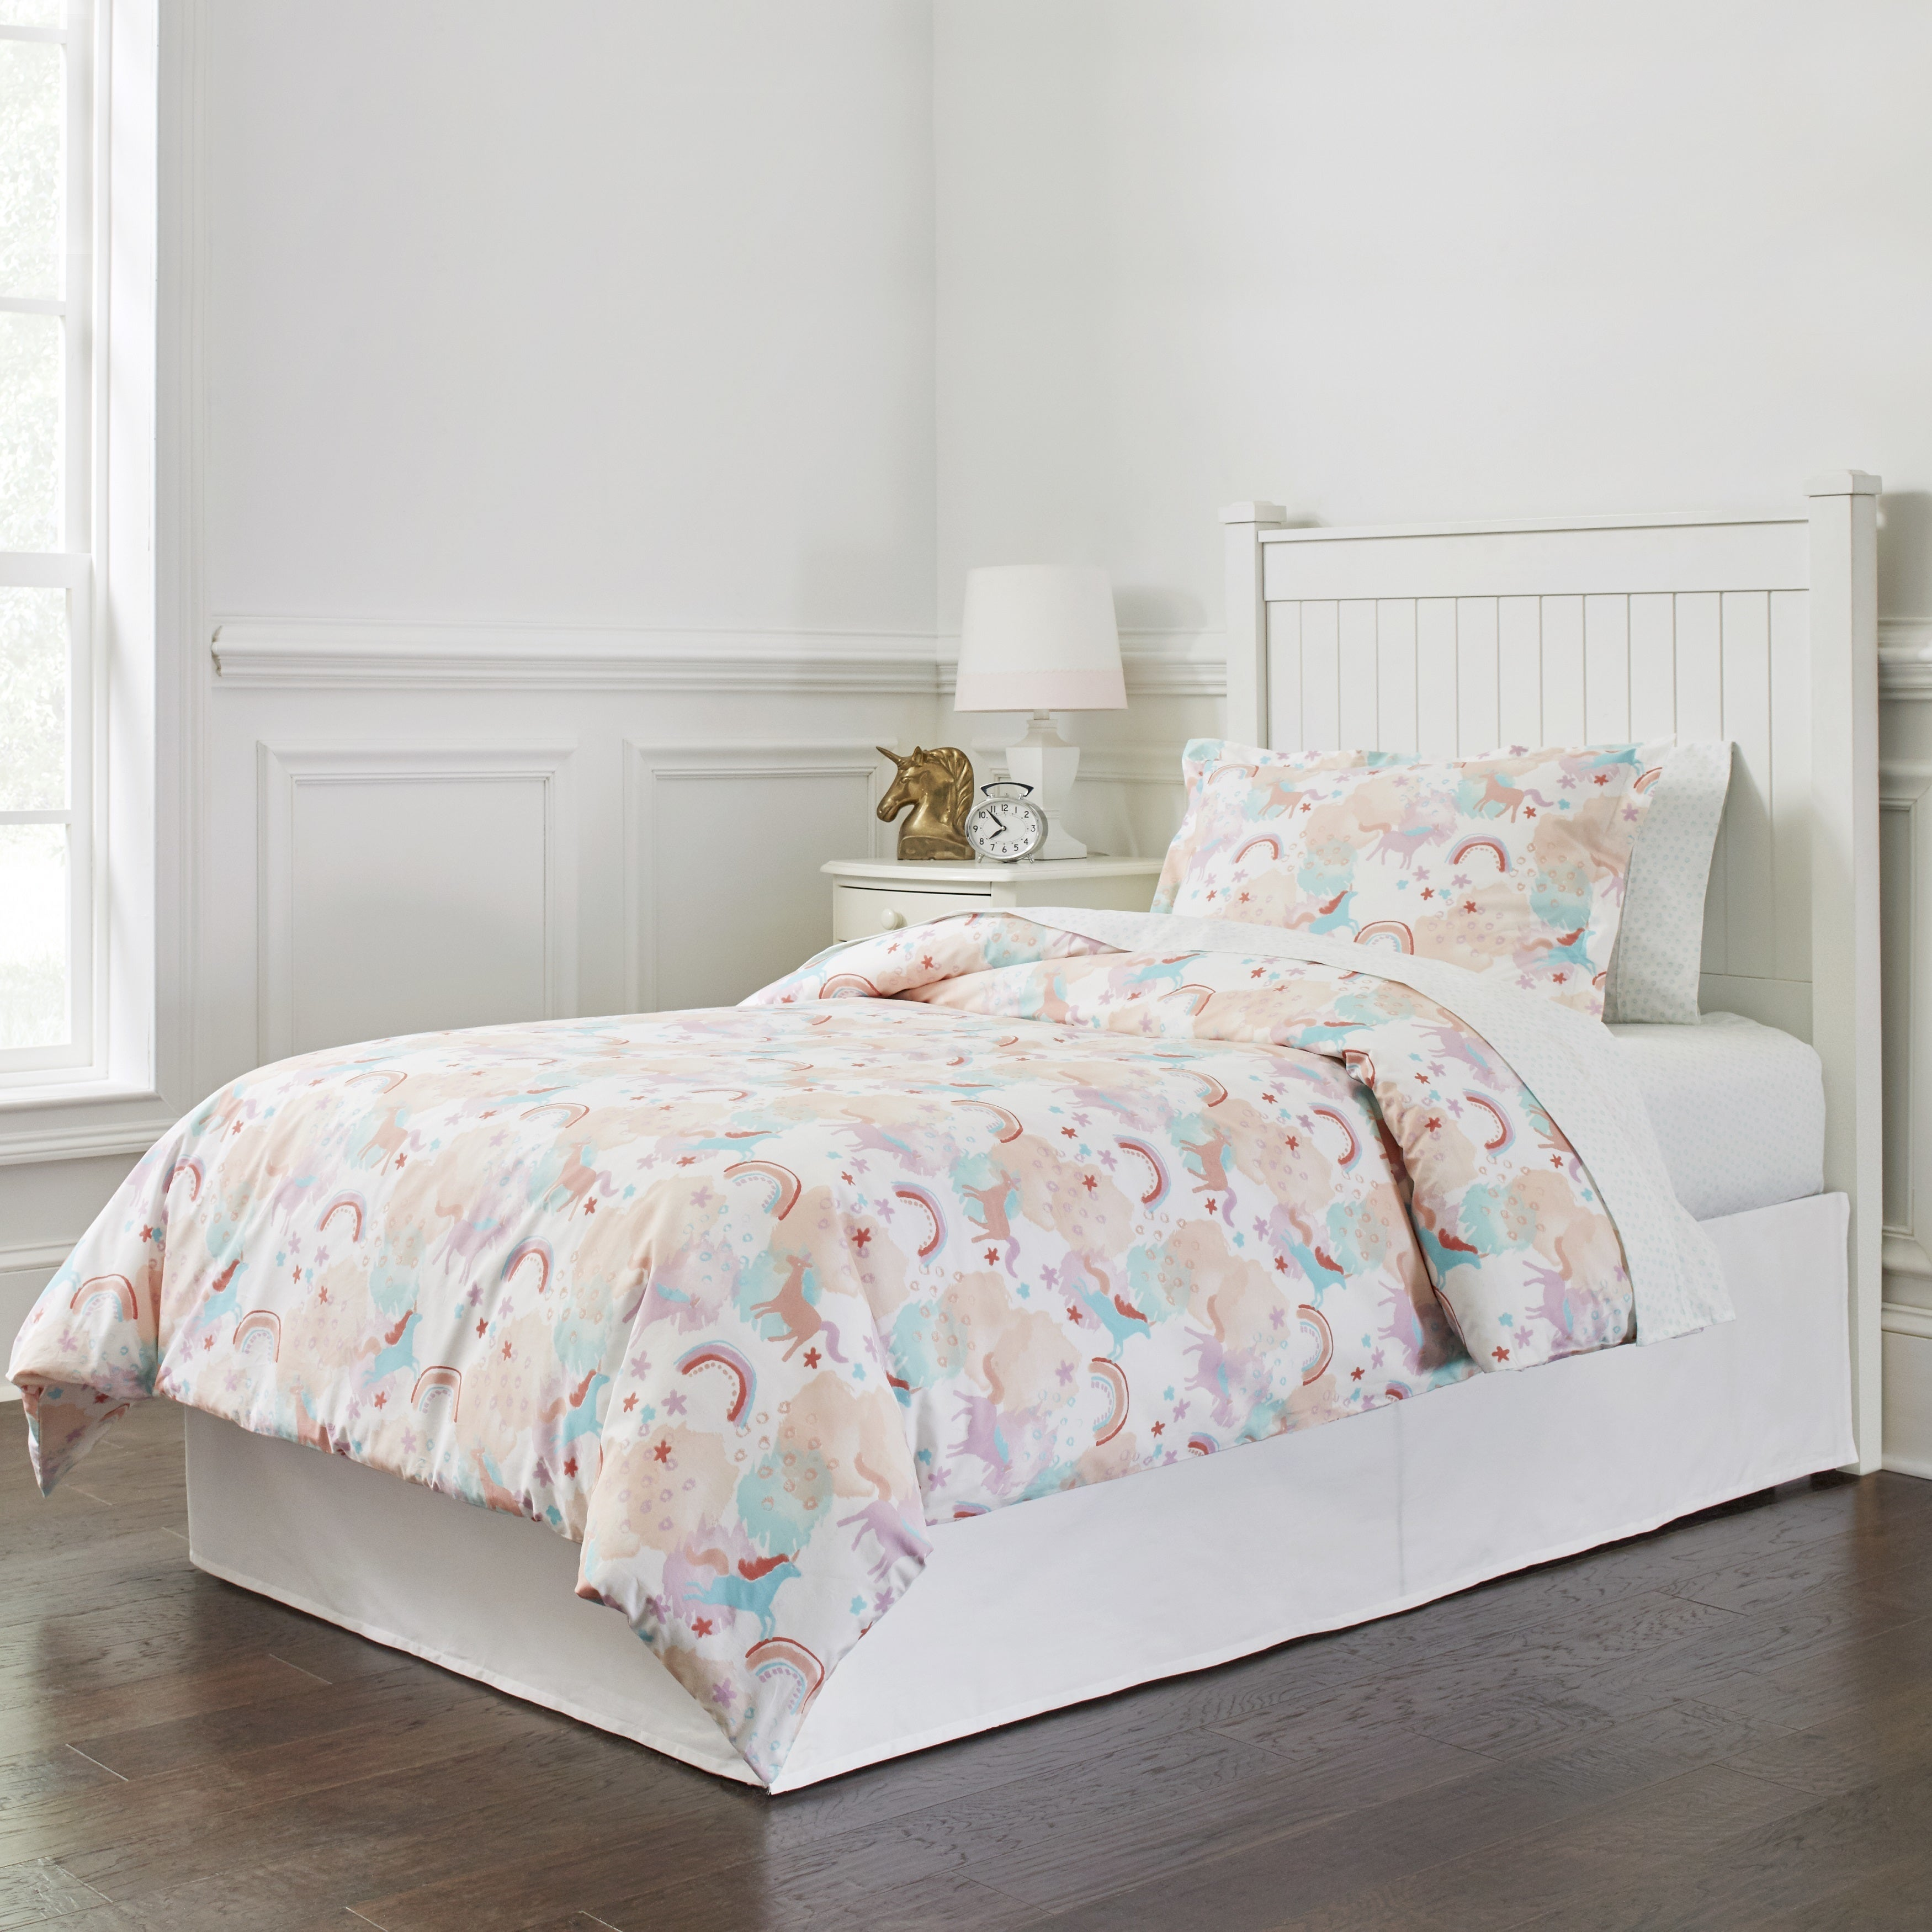 set s duvet unicorns inflowcomponent bed p i bedding in content global inflow unicorn pillowcase and cancel res cover believe pink single